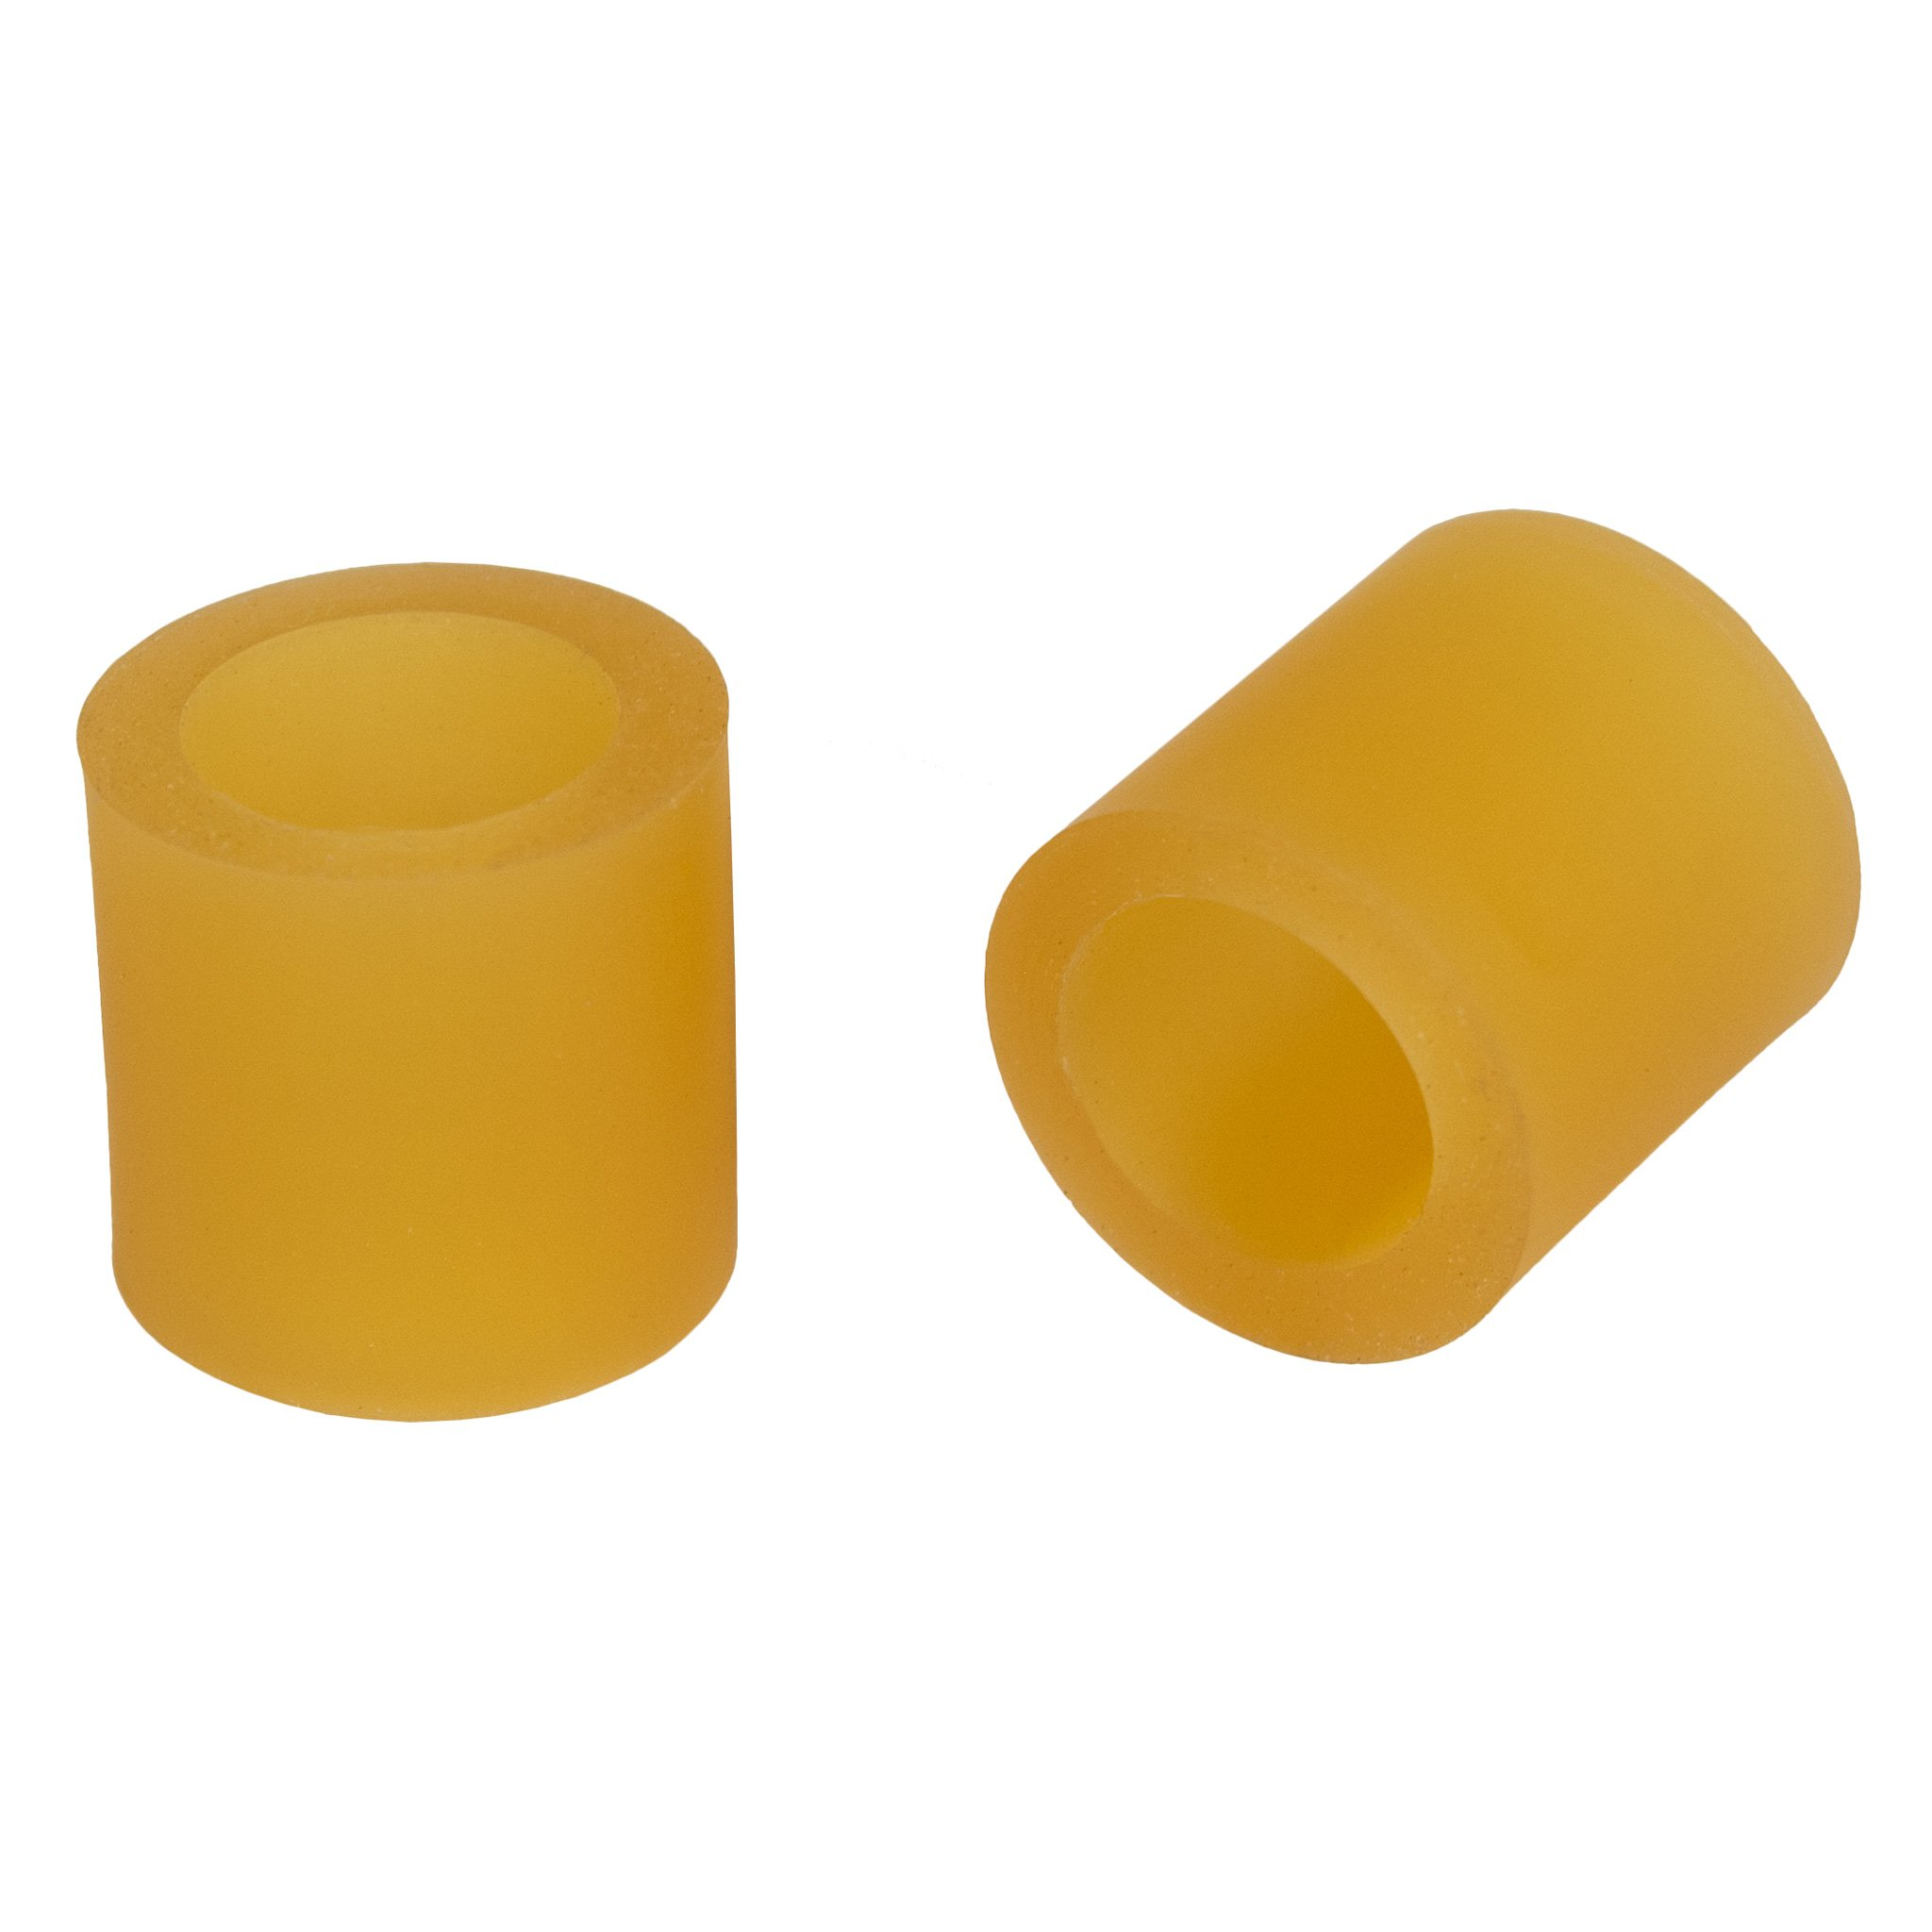 Percussion Plus steel pan mallet tips - pack of 2